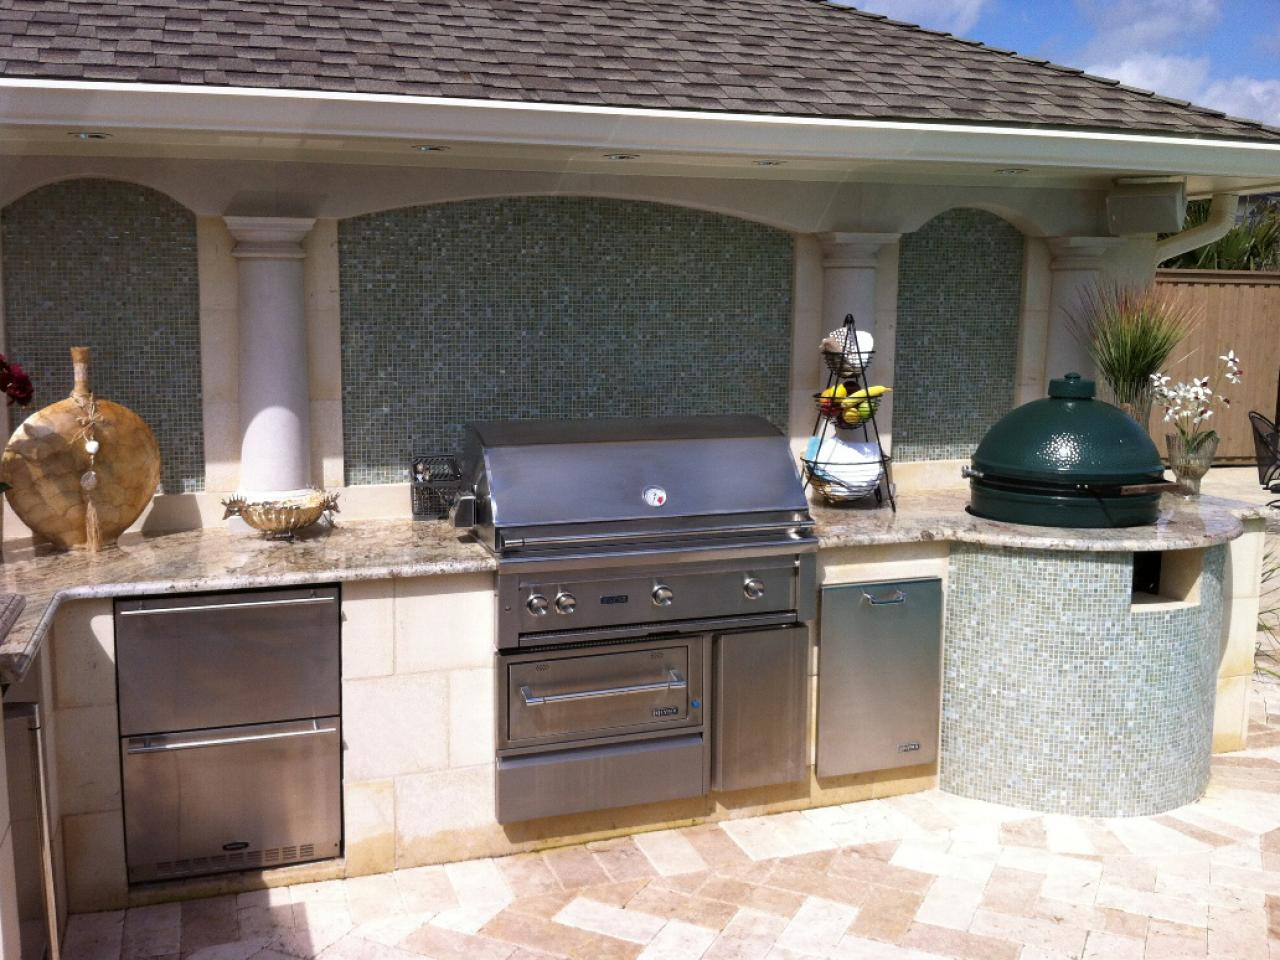 Outdoor Kitchen Designs Pictures Ideas  Tips From HGTV HGTV - Outdoor kitchen designs with smoker